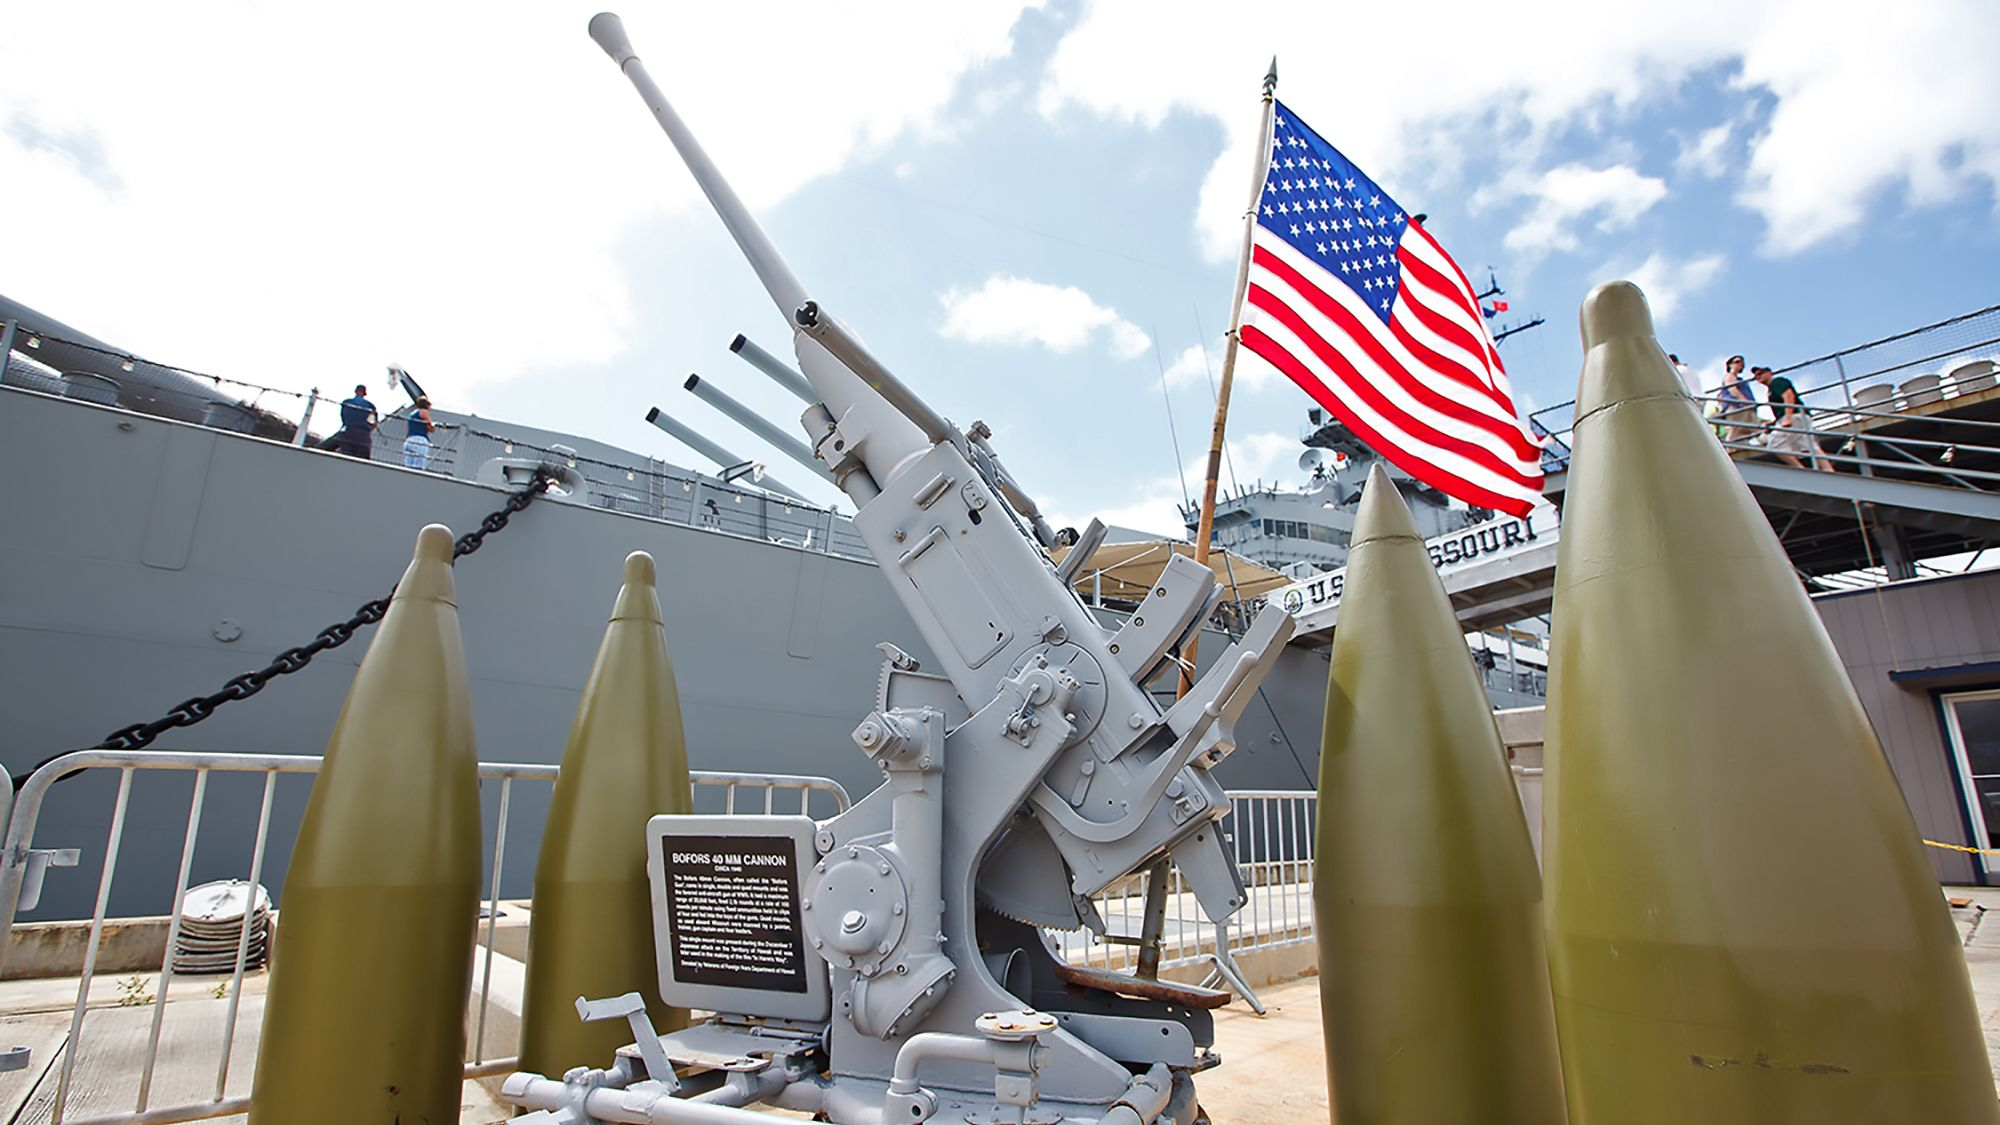 USS Missouri weapons close up in Oahu